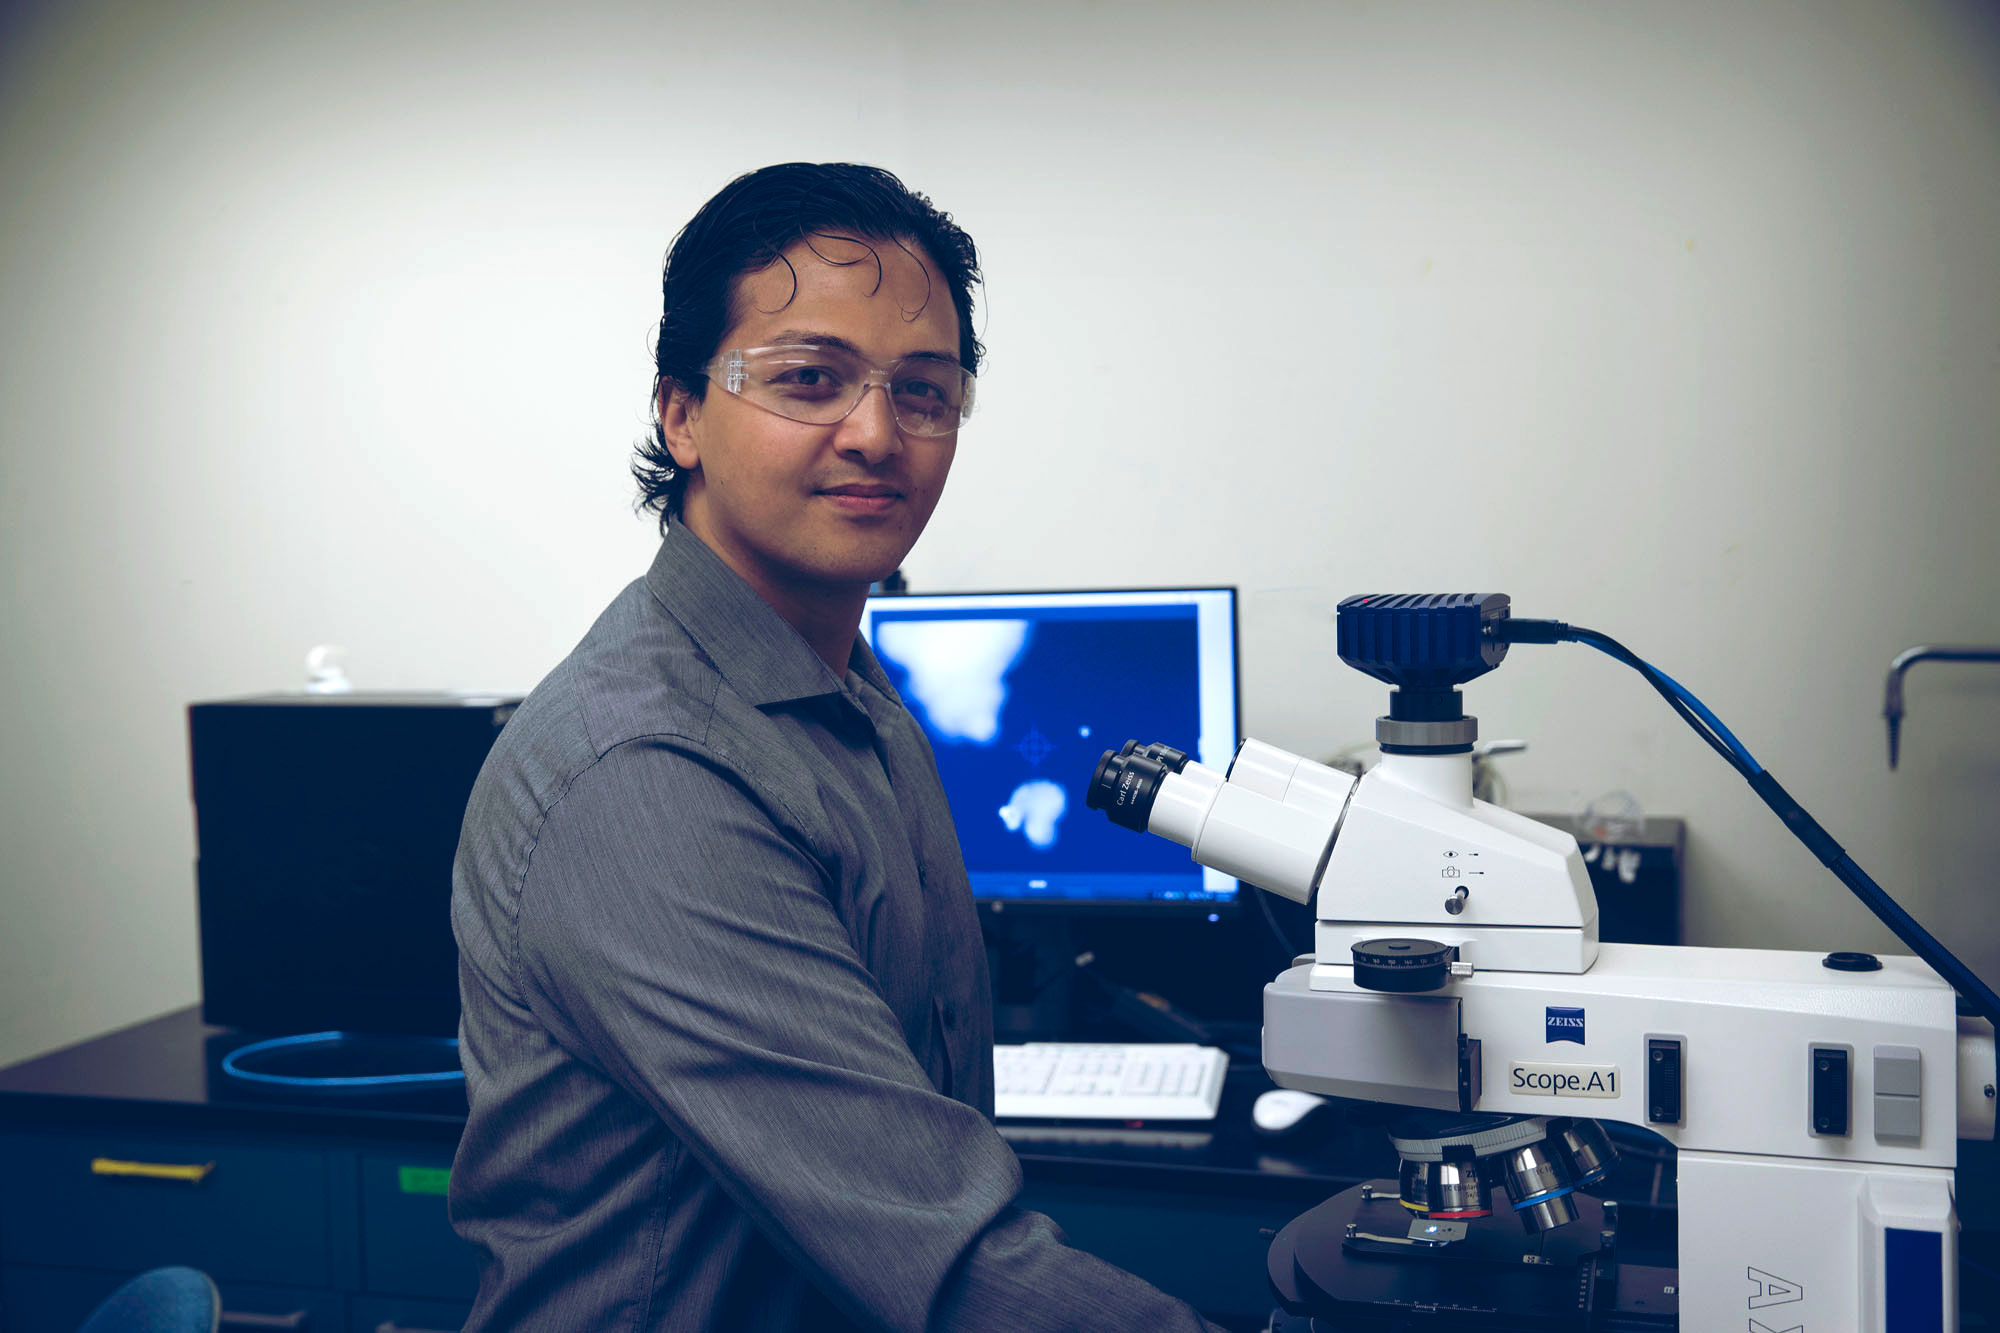 At age 30, chemical engineer Guarav Giri is leading a new wave of research into exciting and novel forms of electronics. (Photos by Dan Addison, University Communications)